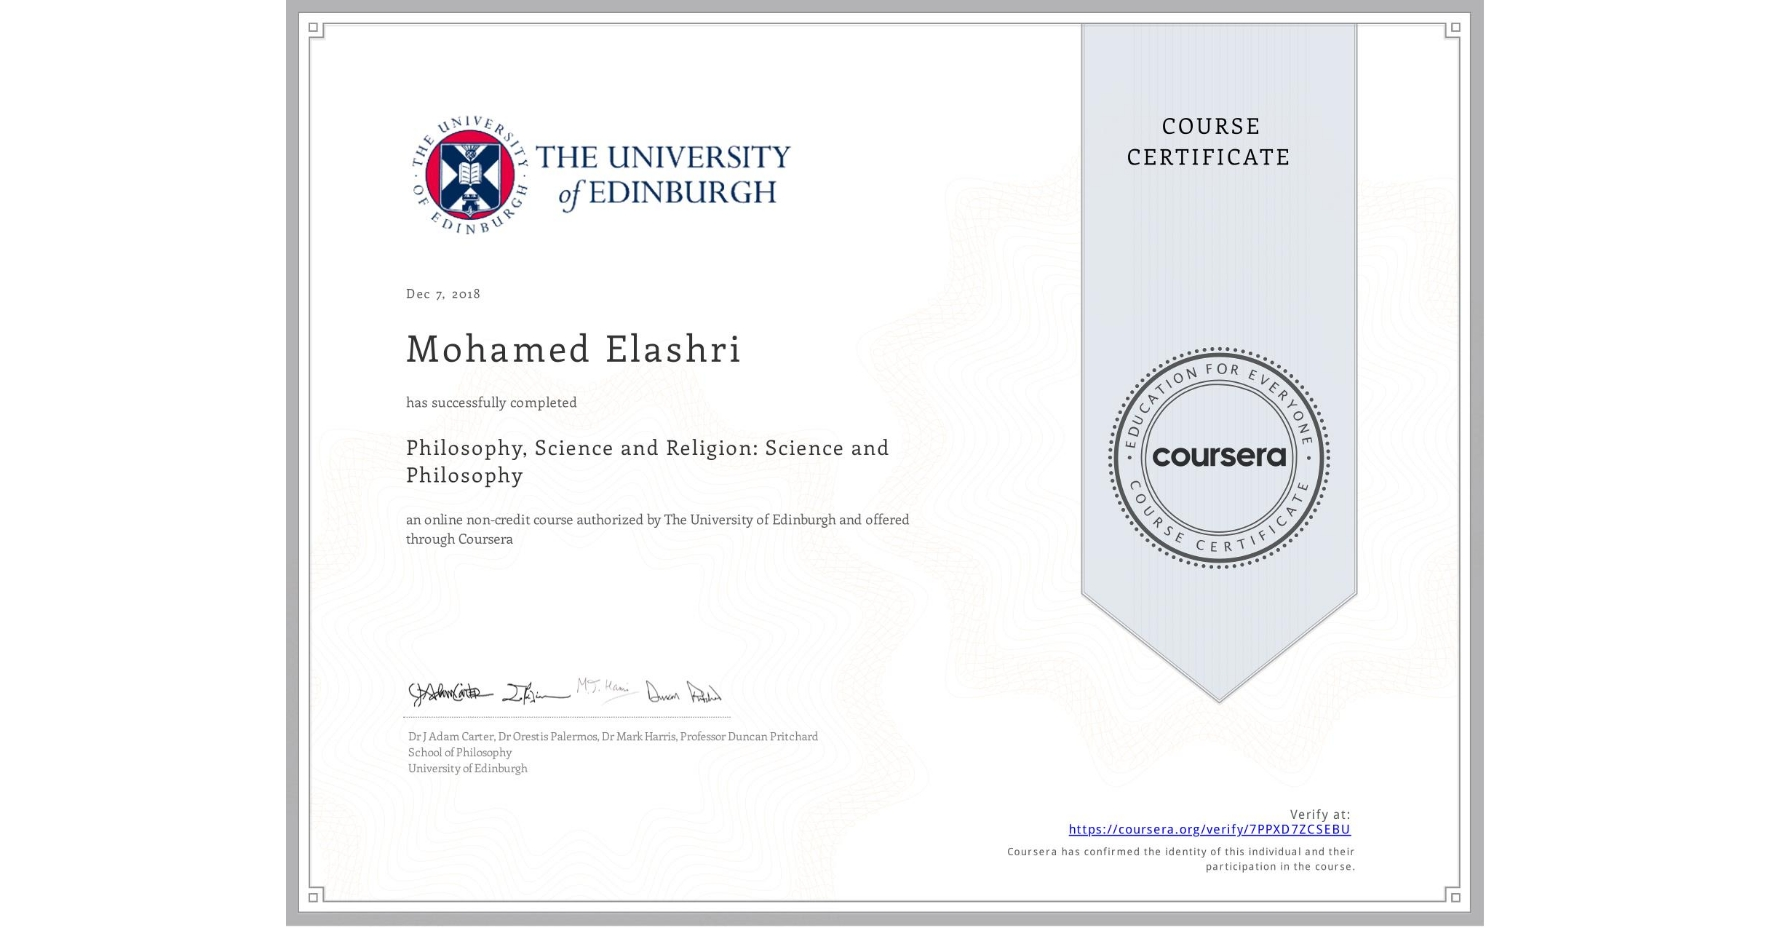 View certificate for Mohamed Elashri, Philosophy, Science and Religion: Science and Philosophy, an online non-credit course authorized by The University of Edinburgh and offered through Coursera